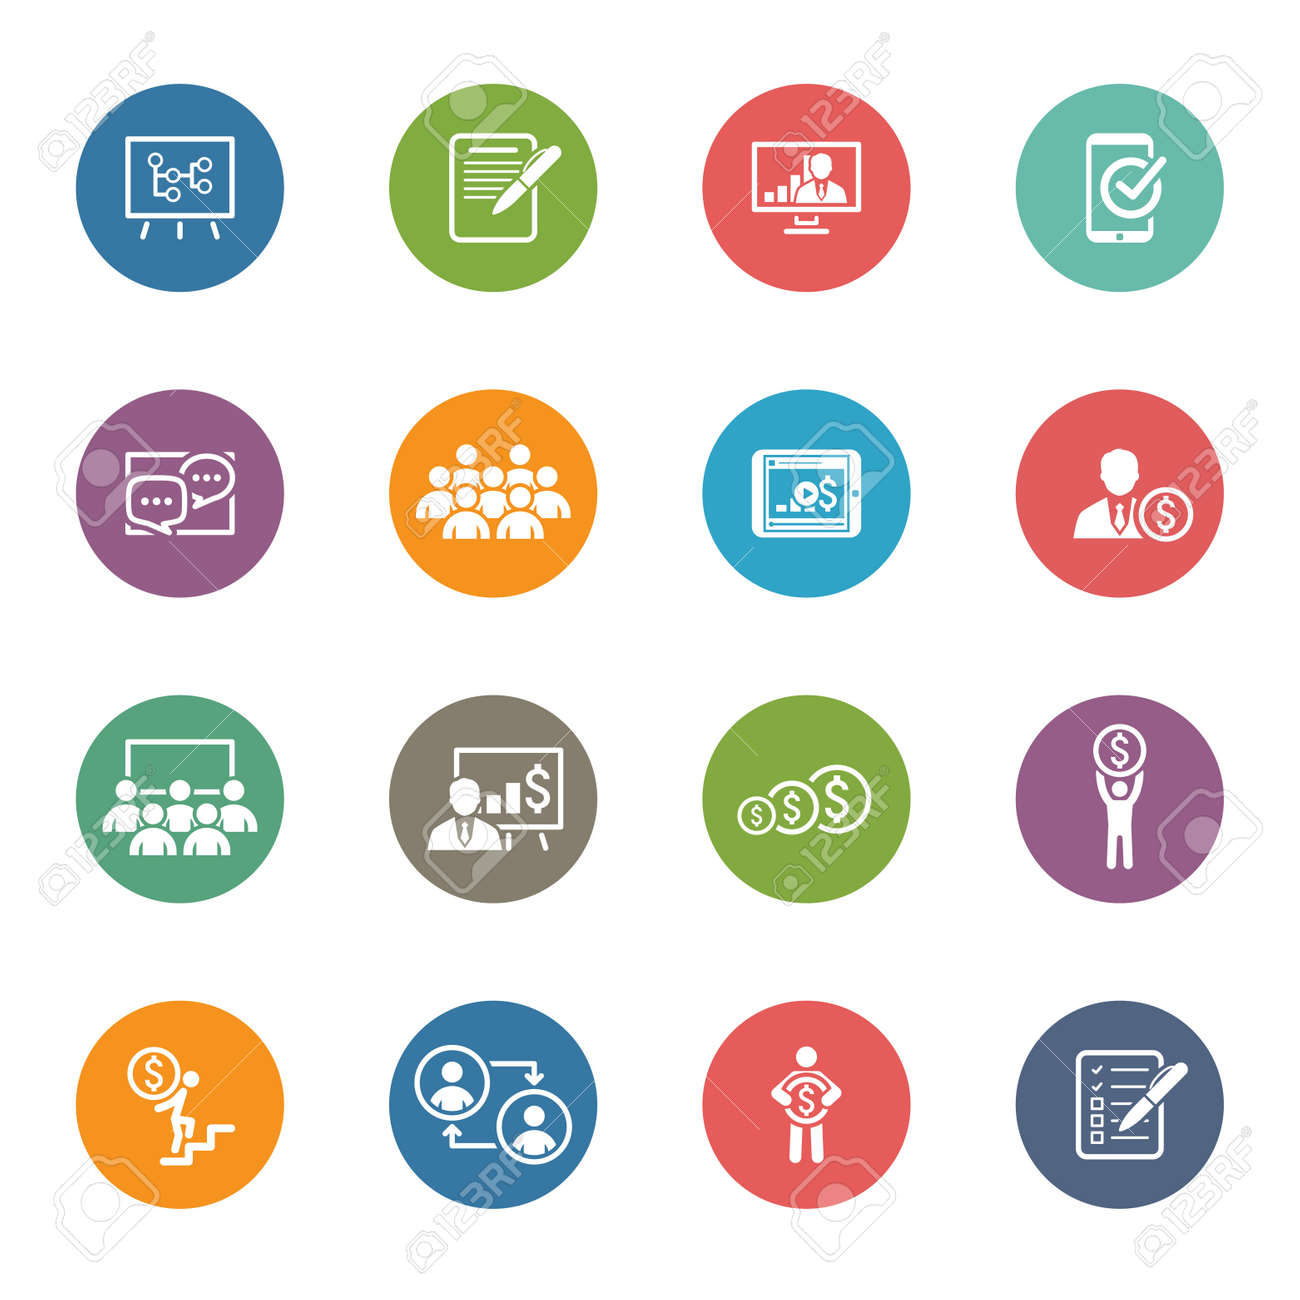 business coaching icon set online learning flat design isolated